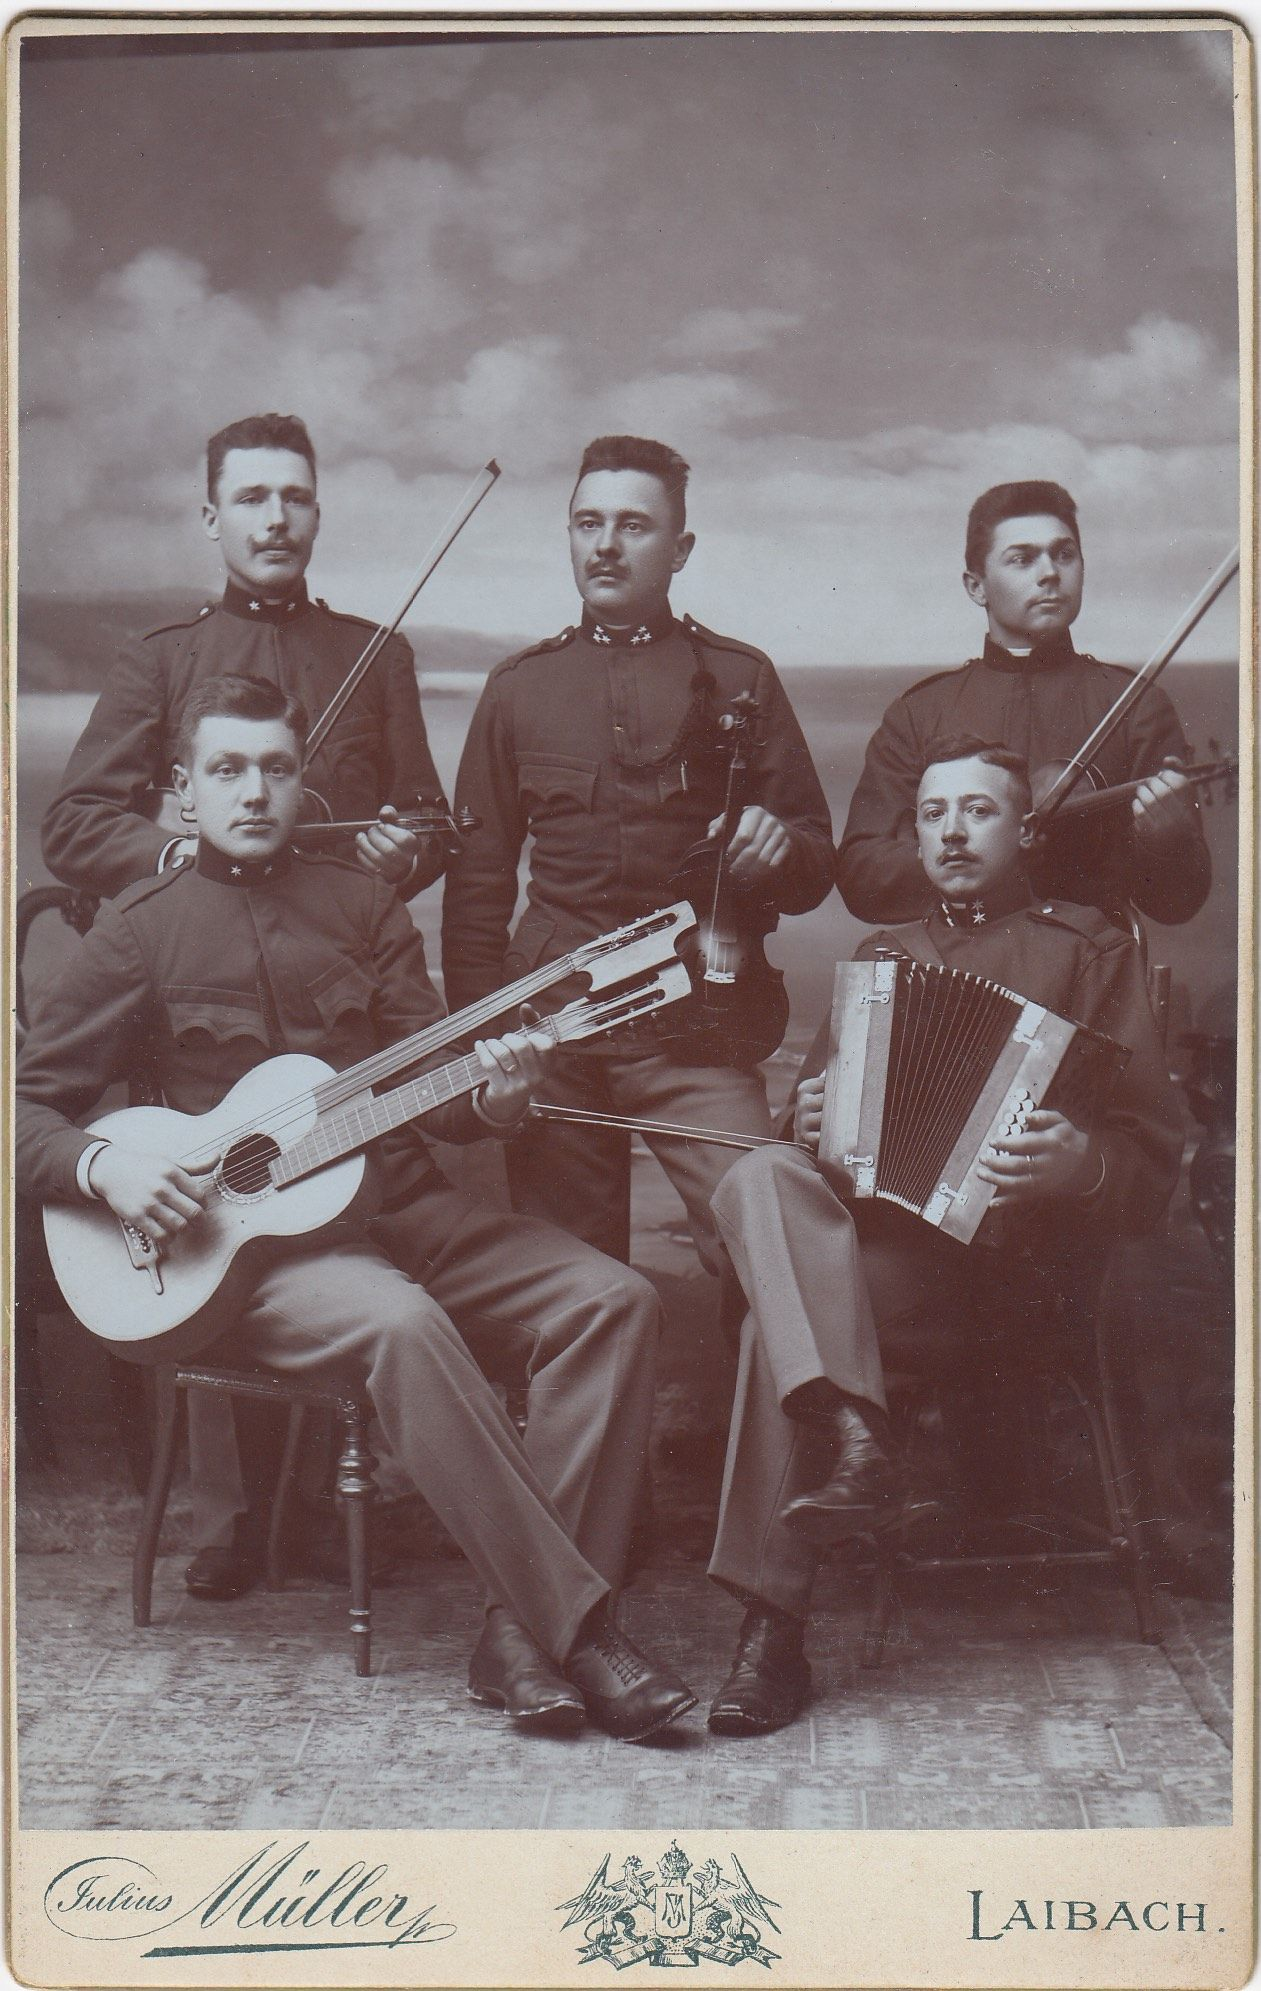 Pin by J Carr on cabinet cards   Antique pictures, Oldies ...